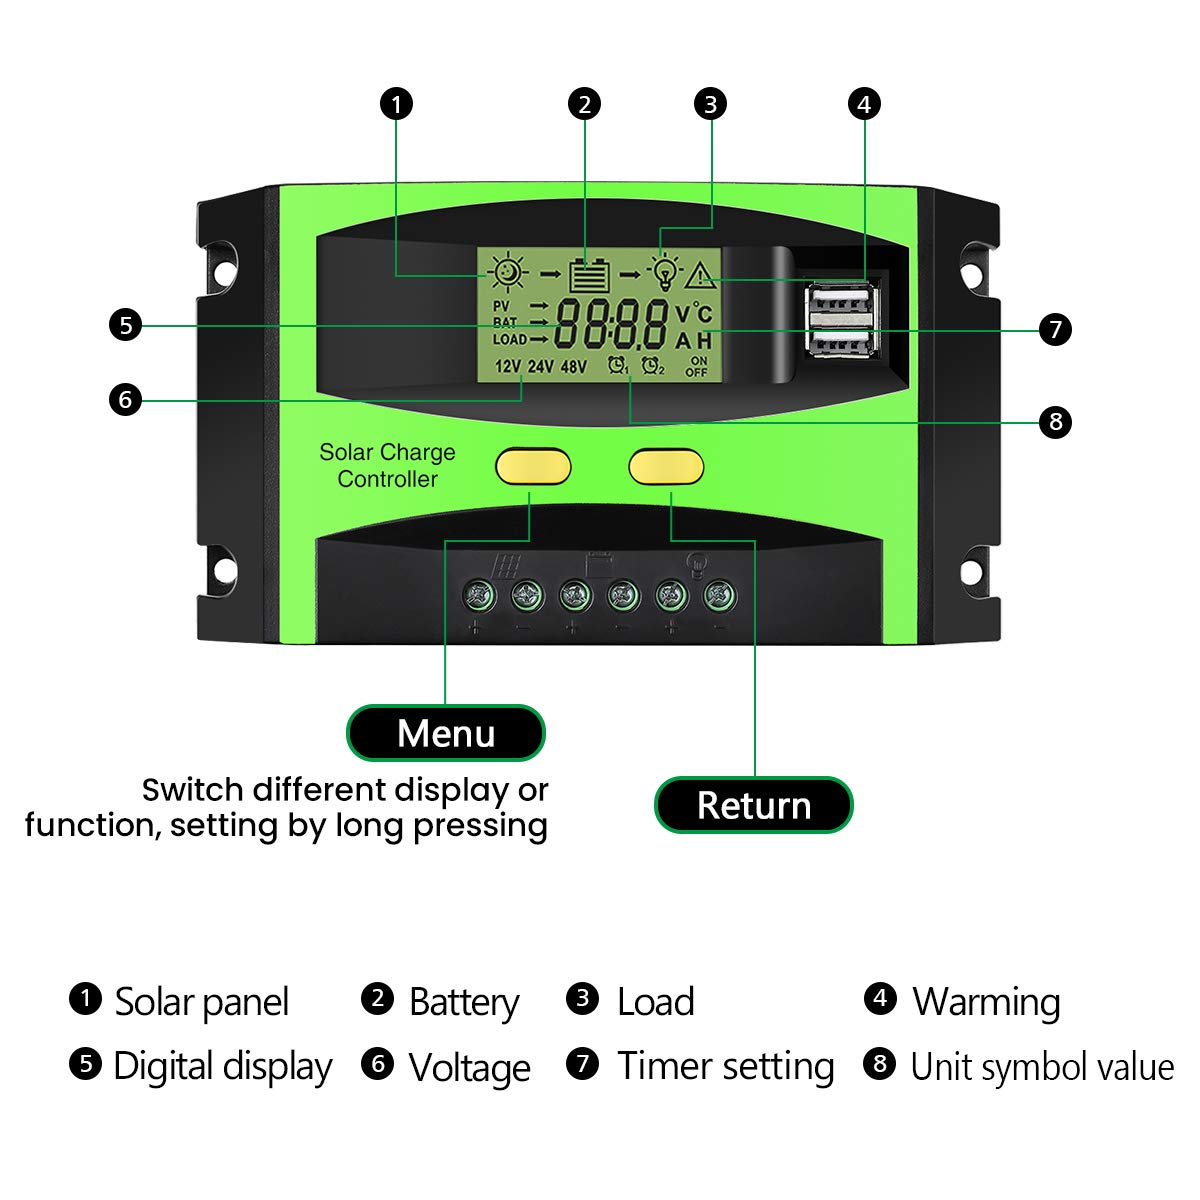 MOHOO Solar Charge Controller, 30A Solar Charger Controller, 12V/24V Solar Panel Intelligent Regulator with Dual USB Port and PWM LCD Display by MOHOO (Image #7)